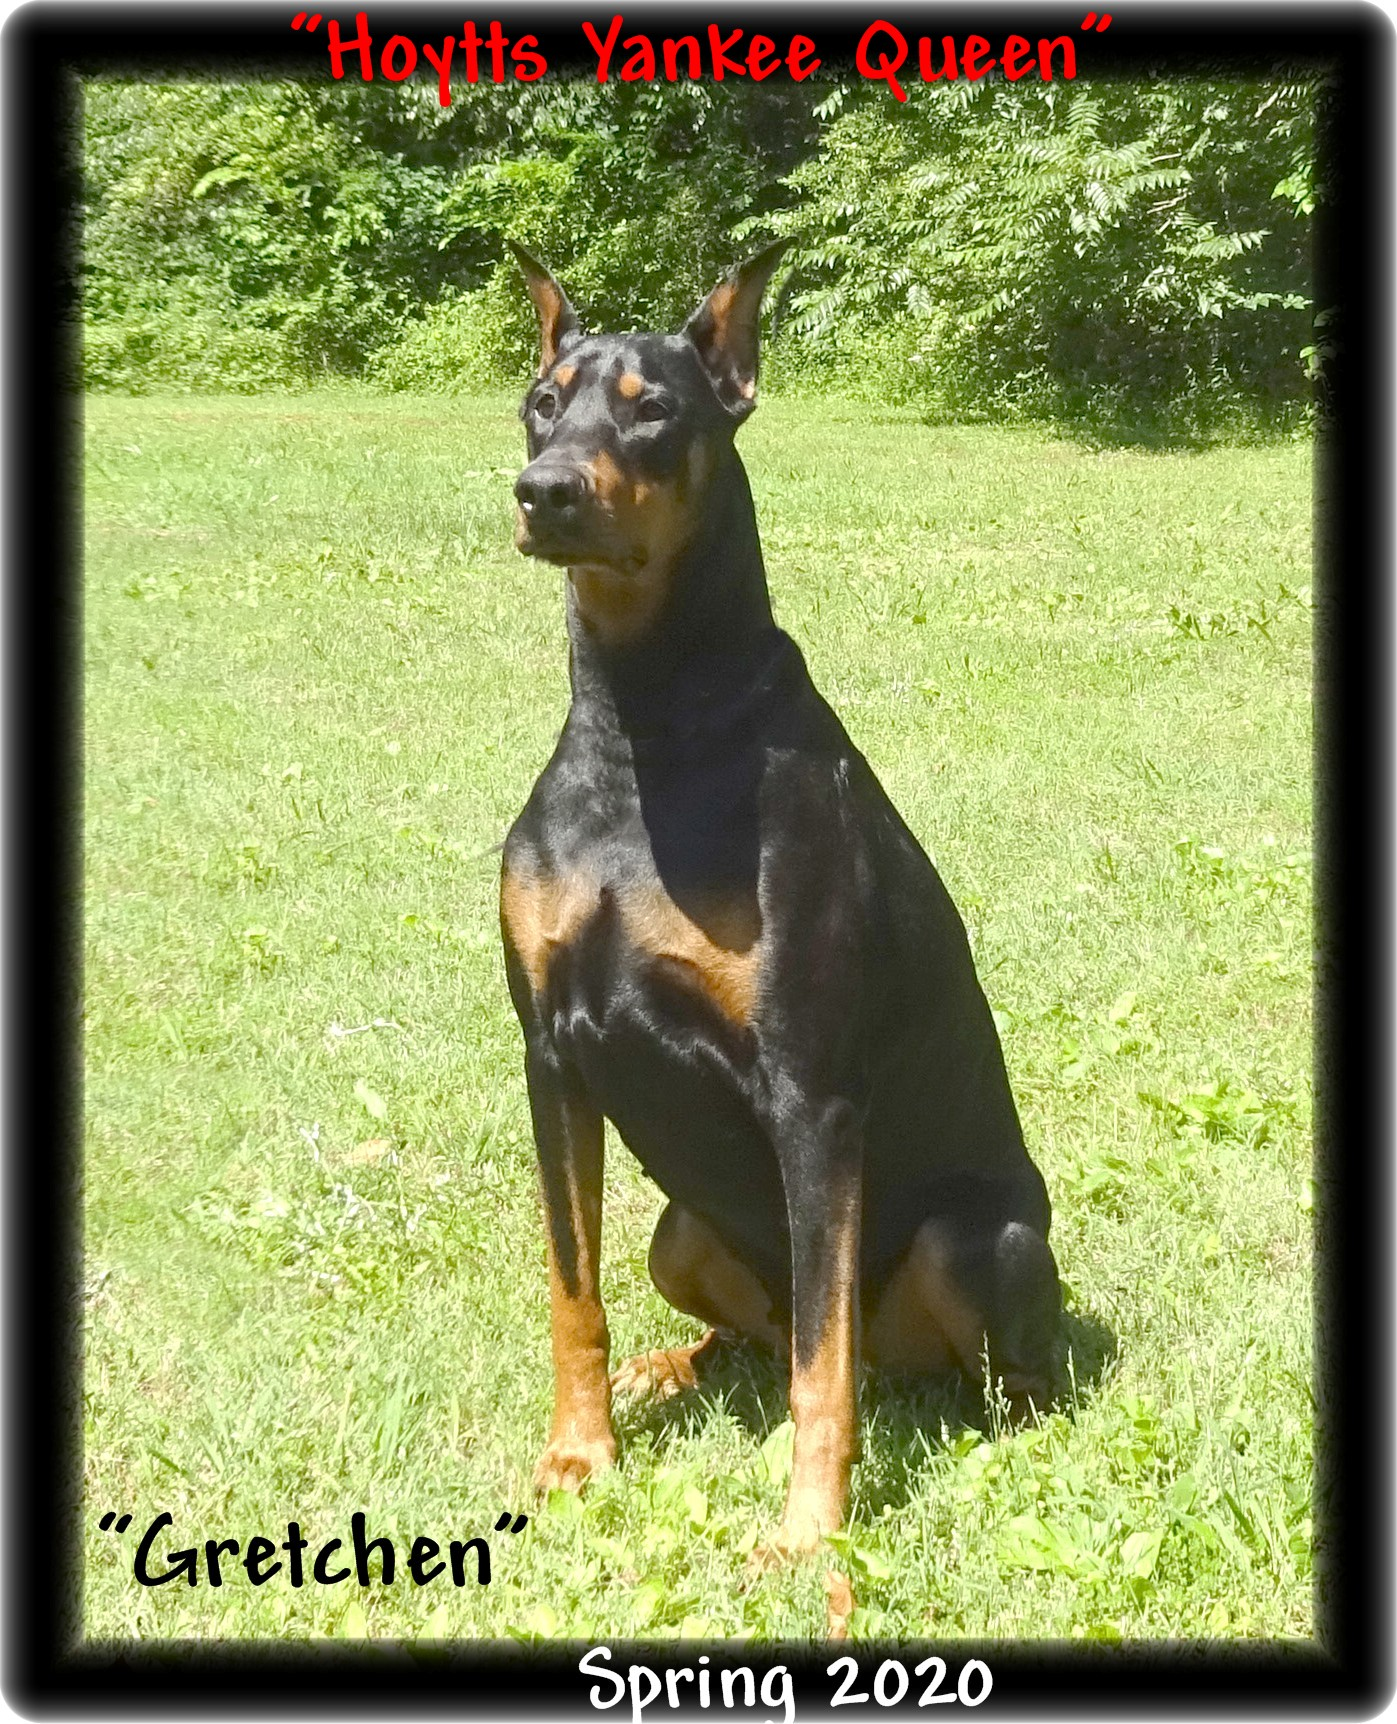 gretchen-breeding-015.jpg